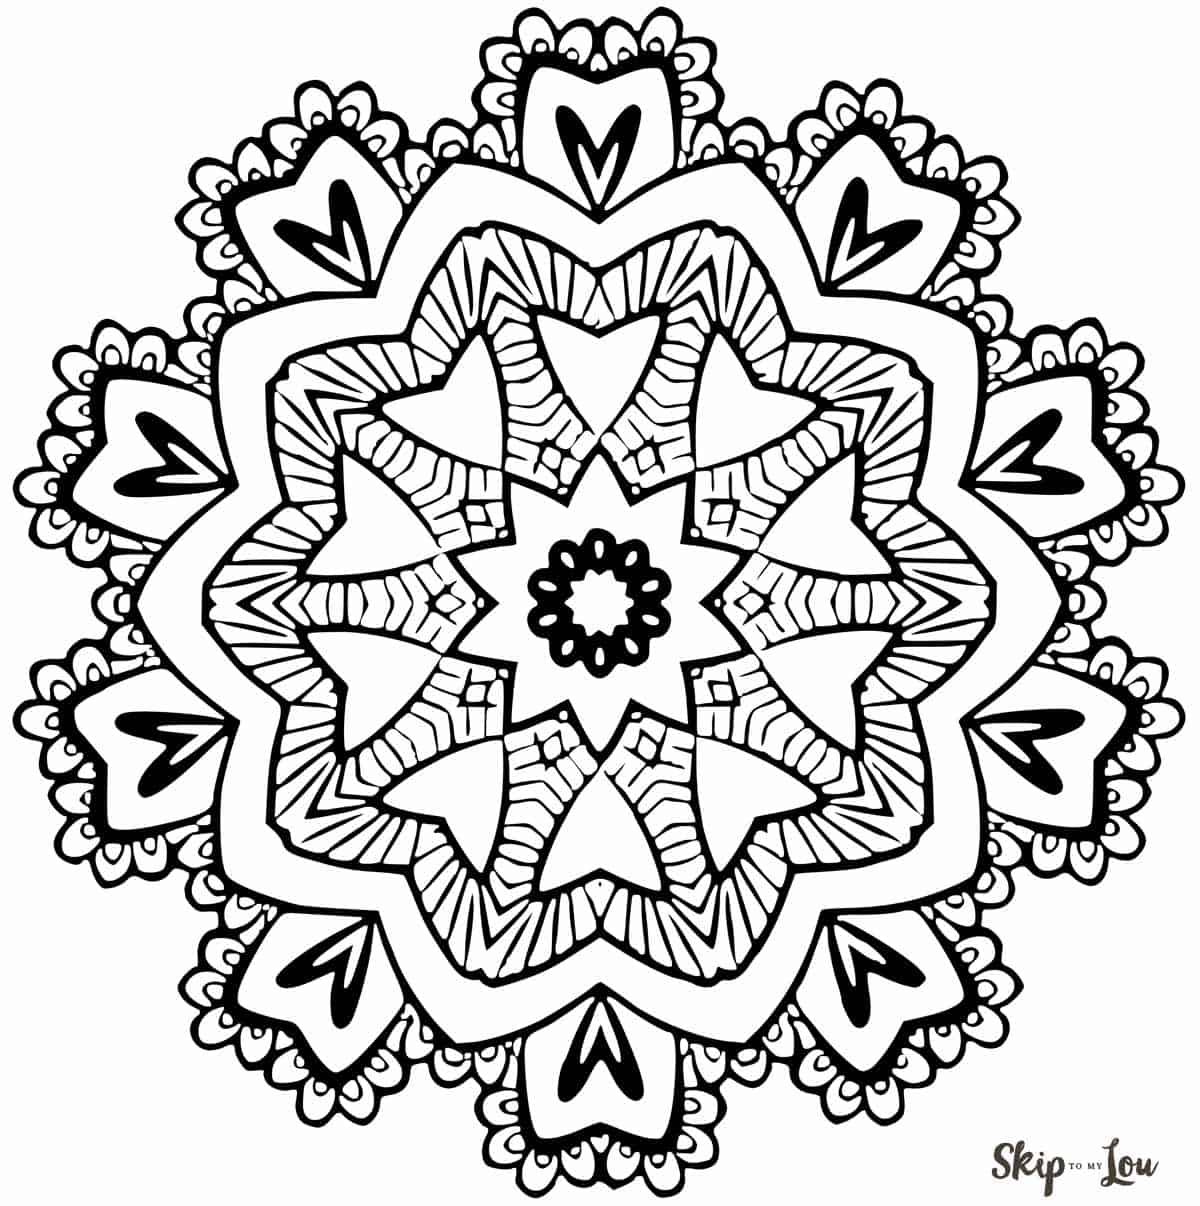 Color Your Stress Away With Mandala Coloring Pages Skip To My Lou